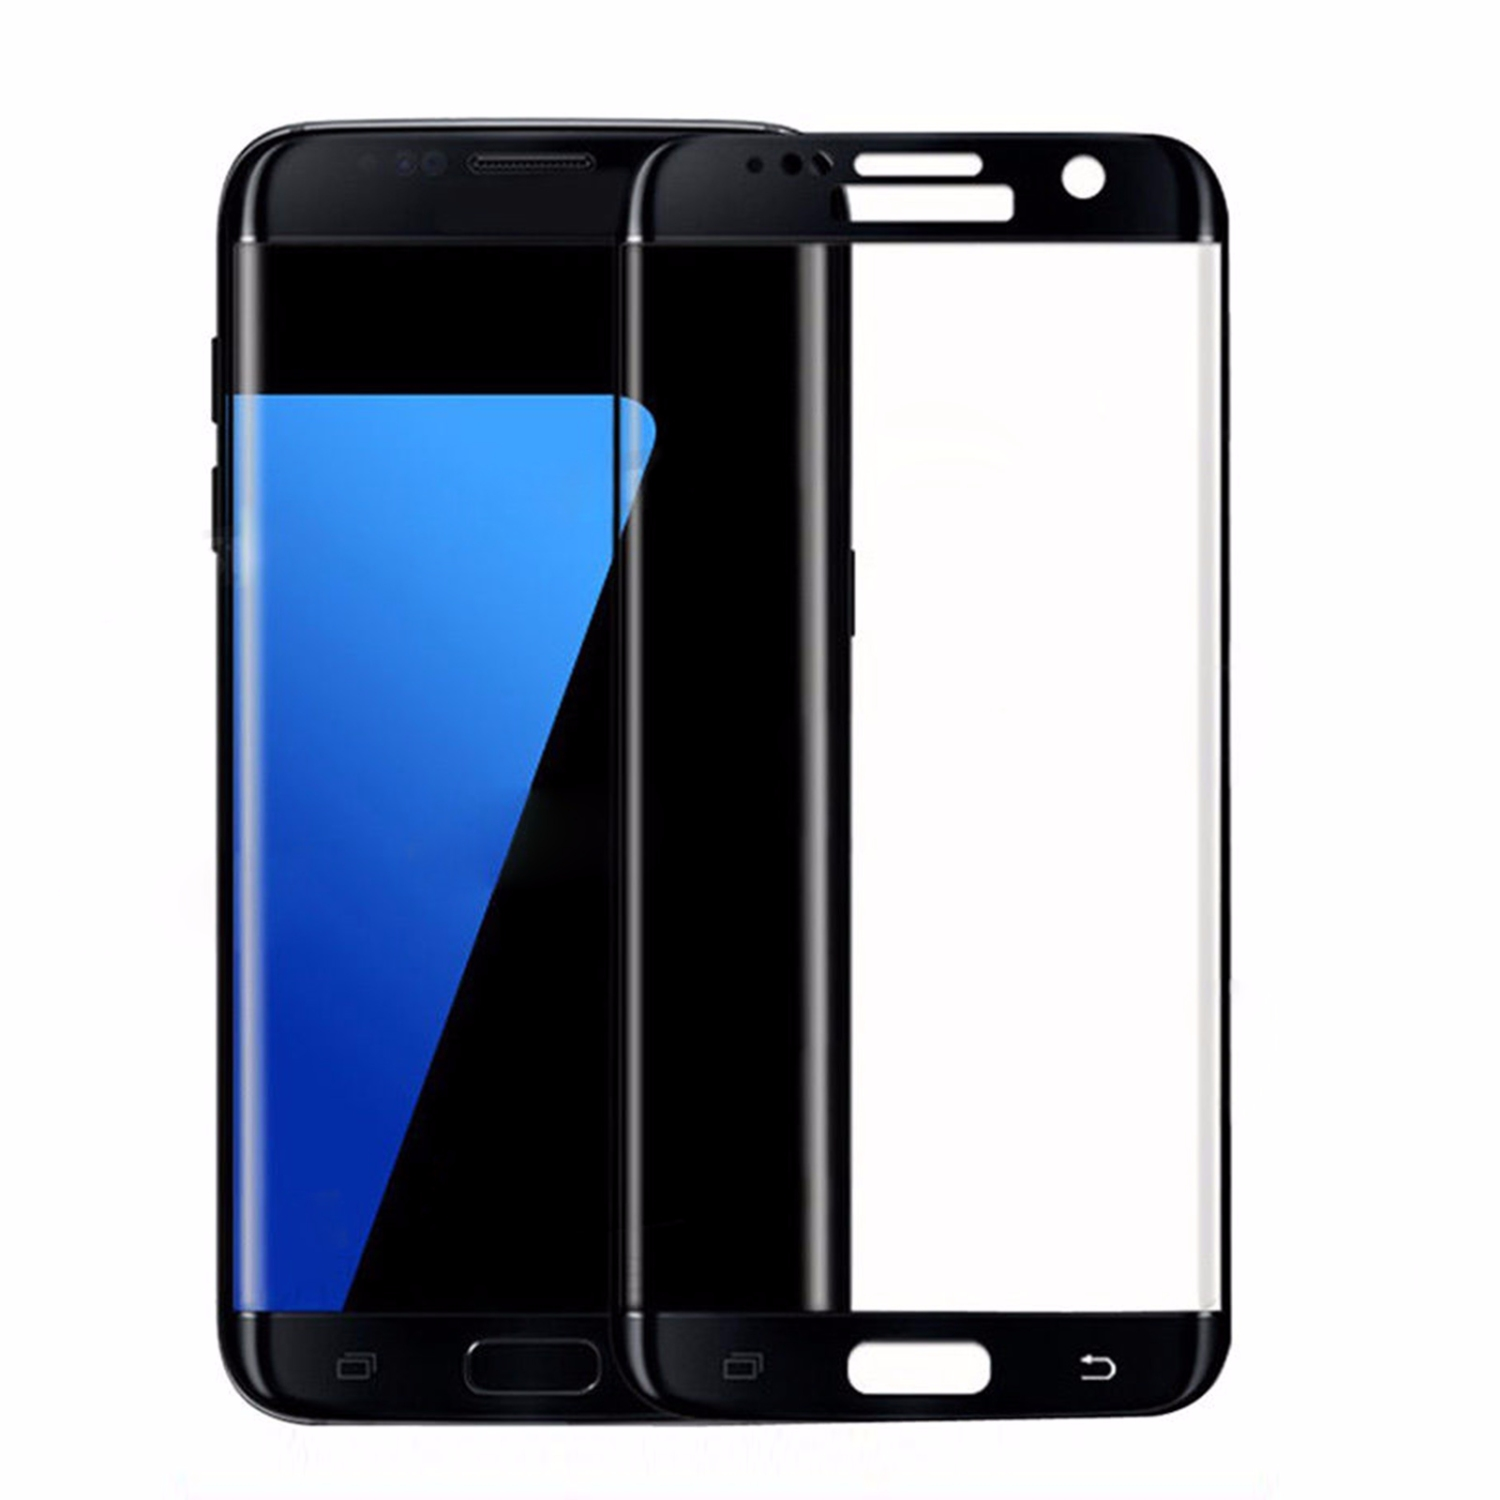 Explosion Proof Silk Curved Screen Film Protector mz5 For ...